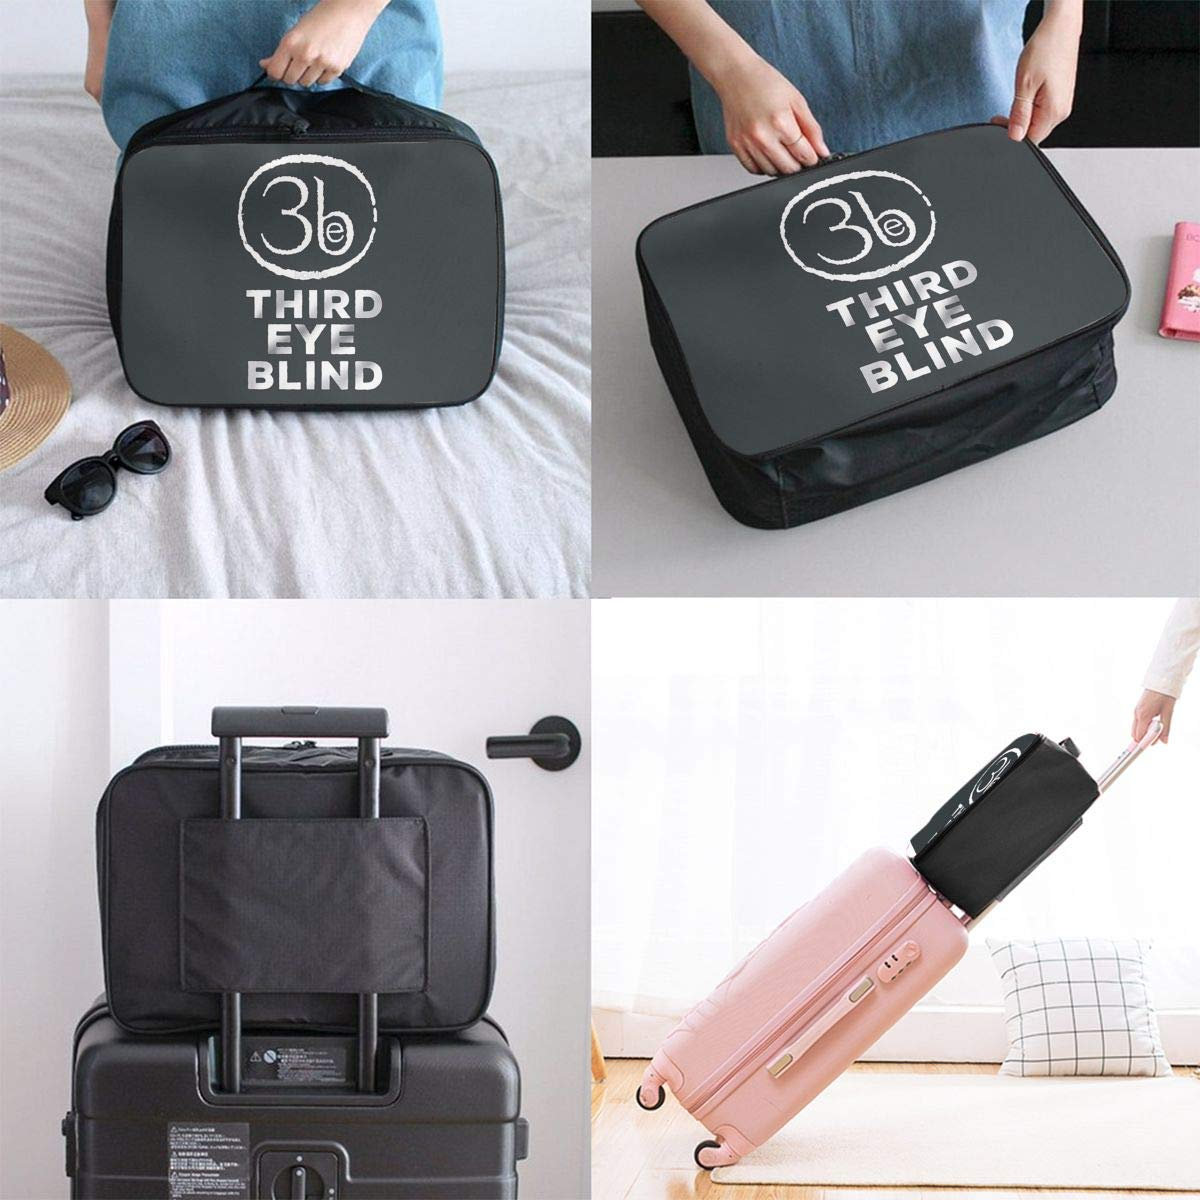 Mdaw232nda Travel Luggage Storage Bag,Packing Cubes Travel Duffel Bag Handle Makeup Bag Large Capacity Portable Luggage Bag